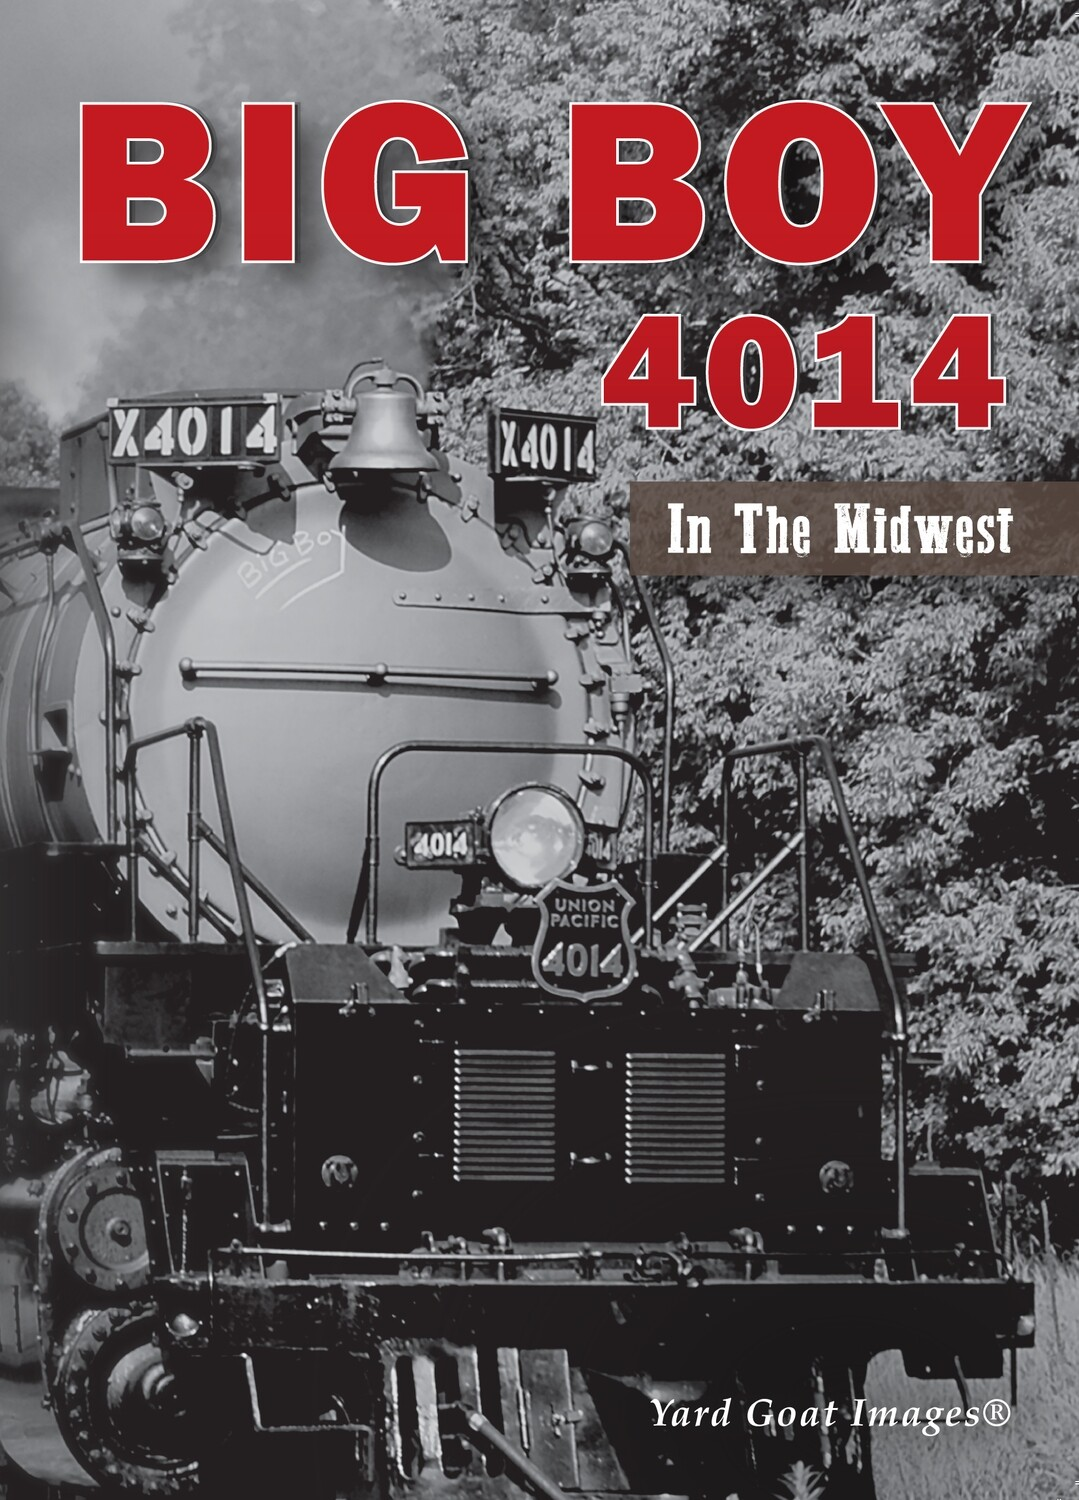 Big Boy 4014 In The Midwest